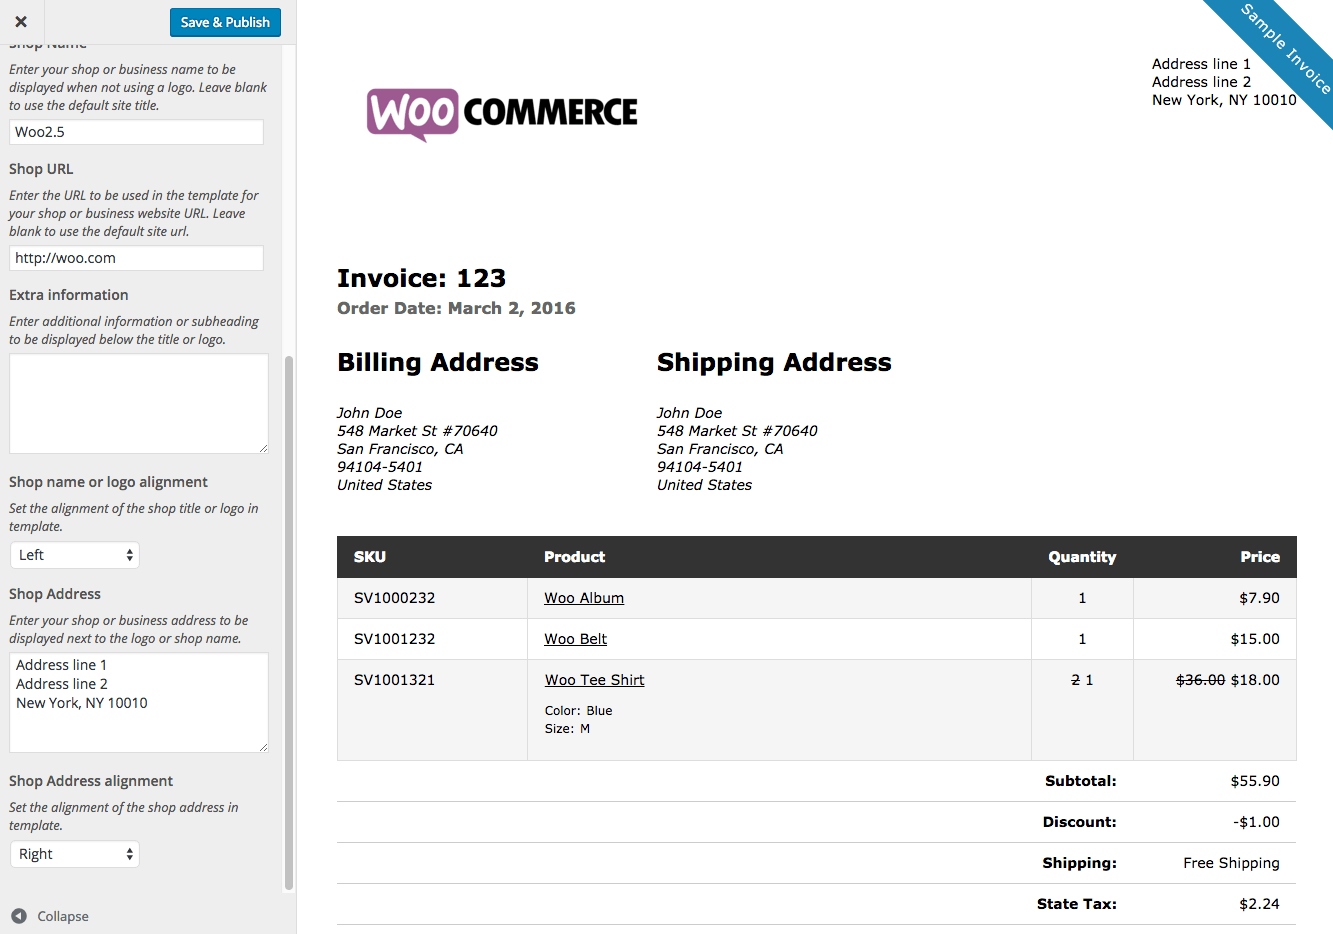 Barneybonesus  Mesmerizing Woocommerce Print Invoices Amp Packing Lists  Woocommerce Docs With Heavenly Woocommerce Print Invoices  Packing Lists Customizer With Appealing Download Invoice Format In Word Also Paypal Buyer Protection Invoice In Addition Profarma Invoice And Create Invoice App As Well As Dell Invoices Additionally Blank Commercial Invoice Template From Docswoocommercecom With Barneybonesus  Heavenly Woocommerce Print Invoices Amp Packing Lists  Woocommerce Docs With Appealing Woocommerce Print Invoices  Packing Lists Customizer And Mesmerizing Download Invoice Format In Word Also Paypal Buyer Protection Invoice In Addition Profarma Invoice From Docswoocommercecom